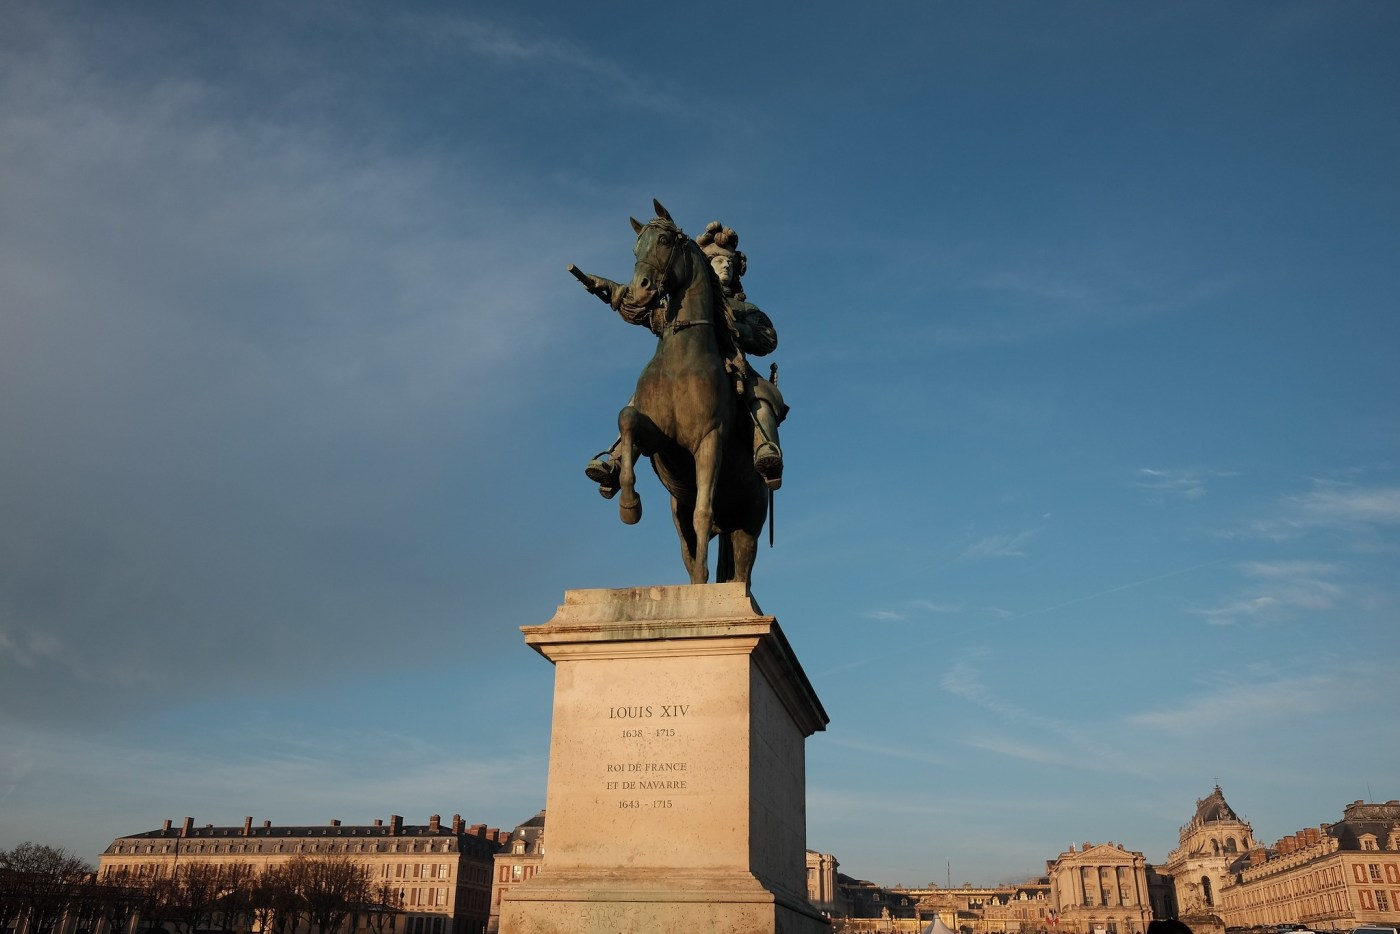 Louis XIV statue at the entrance to the Palace of Versailles